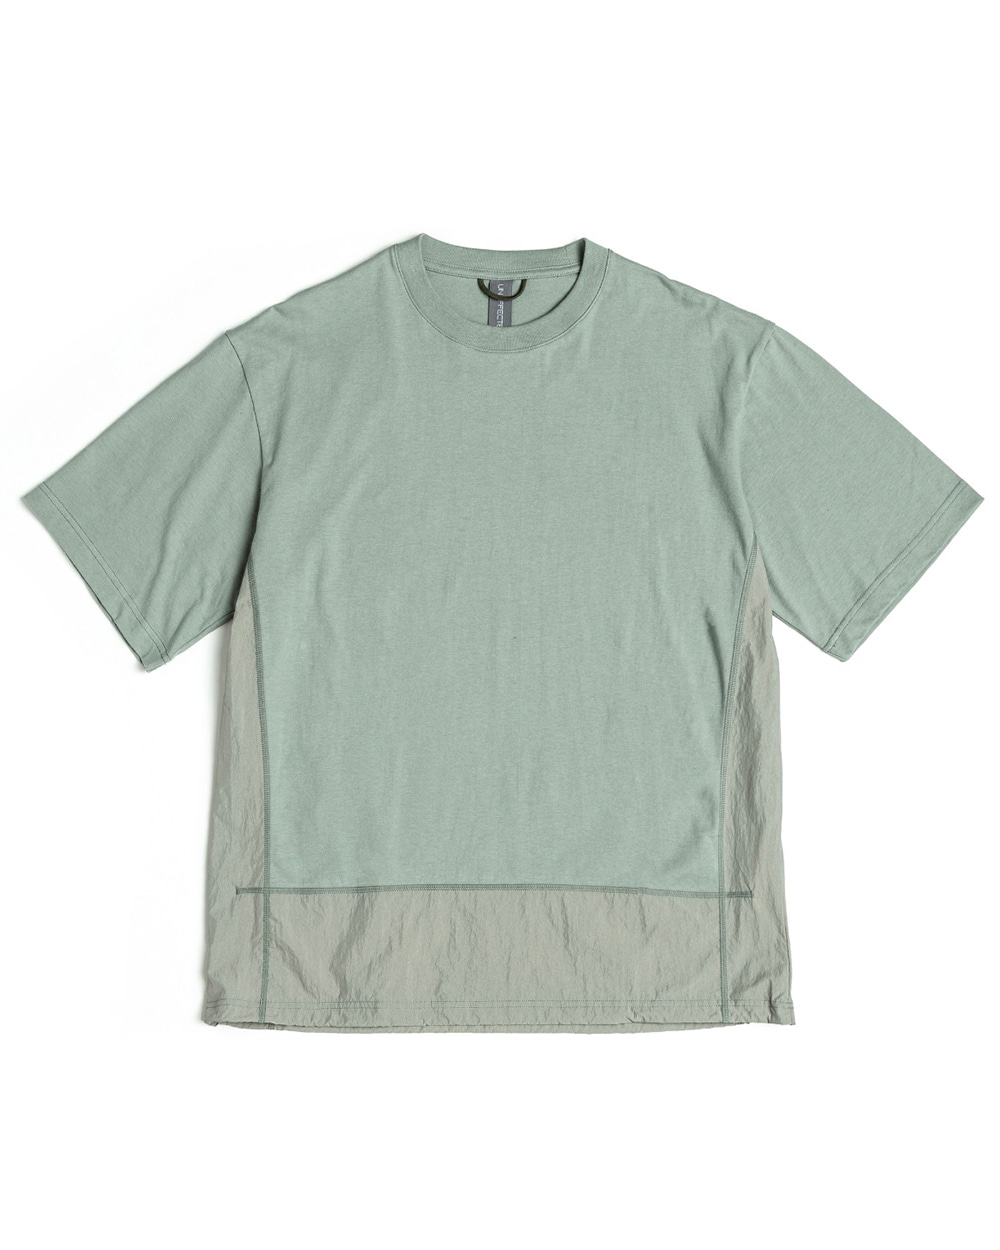 언어펙티드 CONTRAST PANEL T-SHIRT (Aqua smoke)